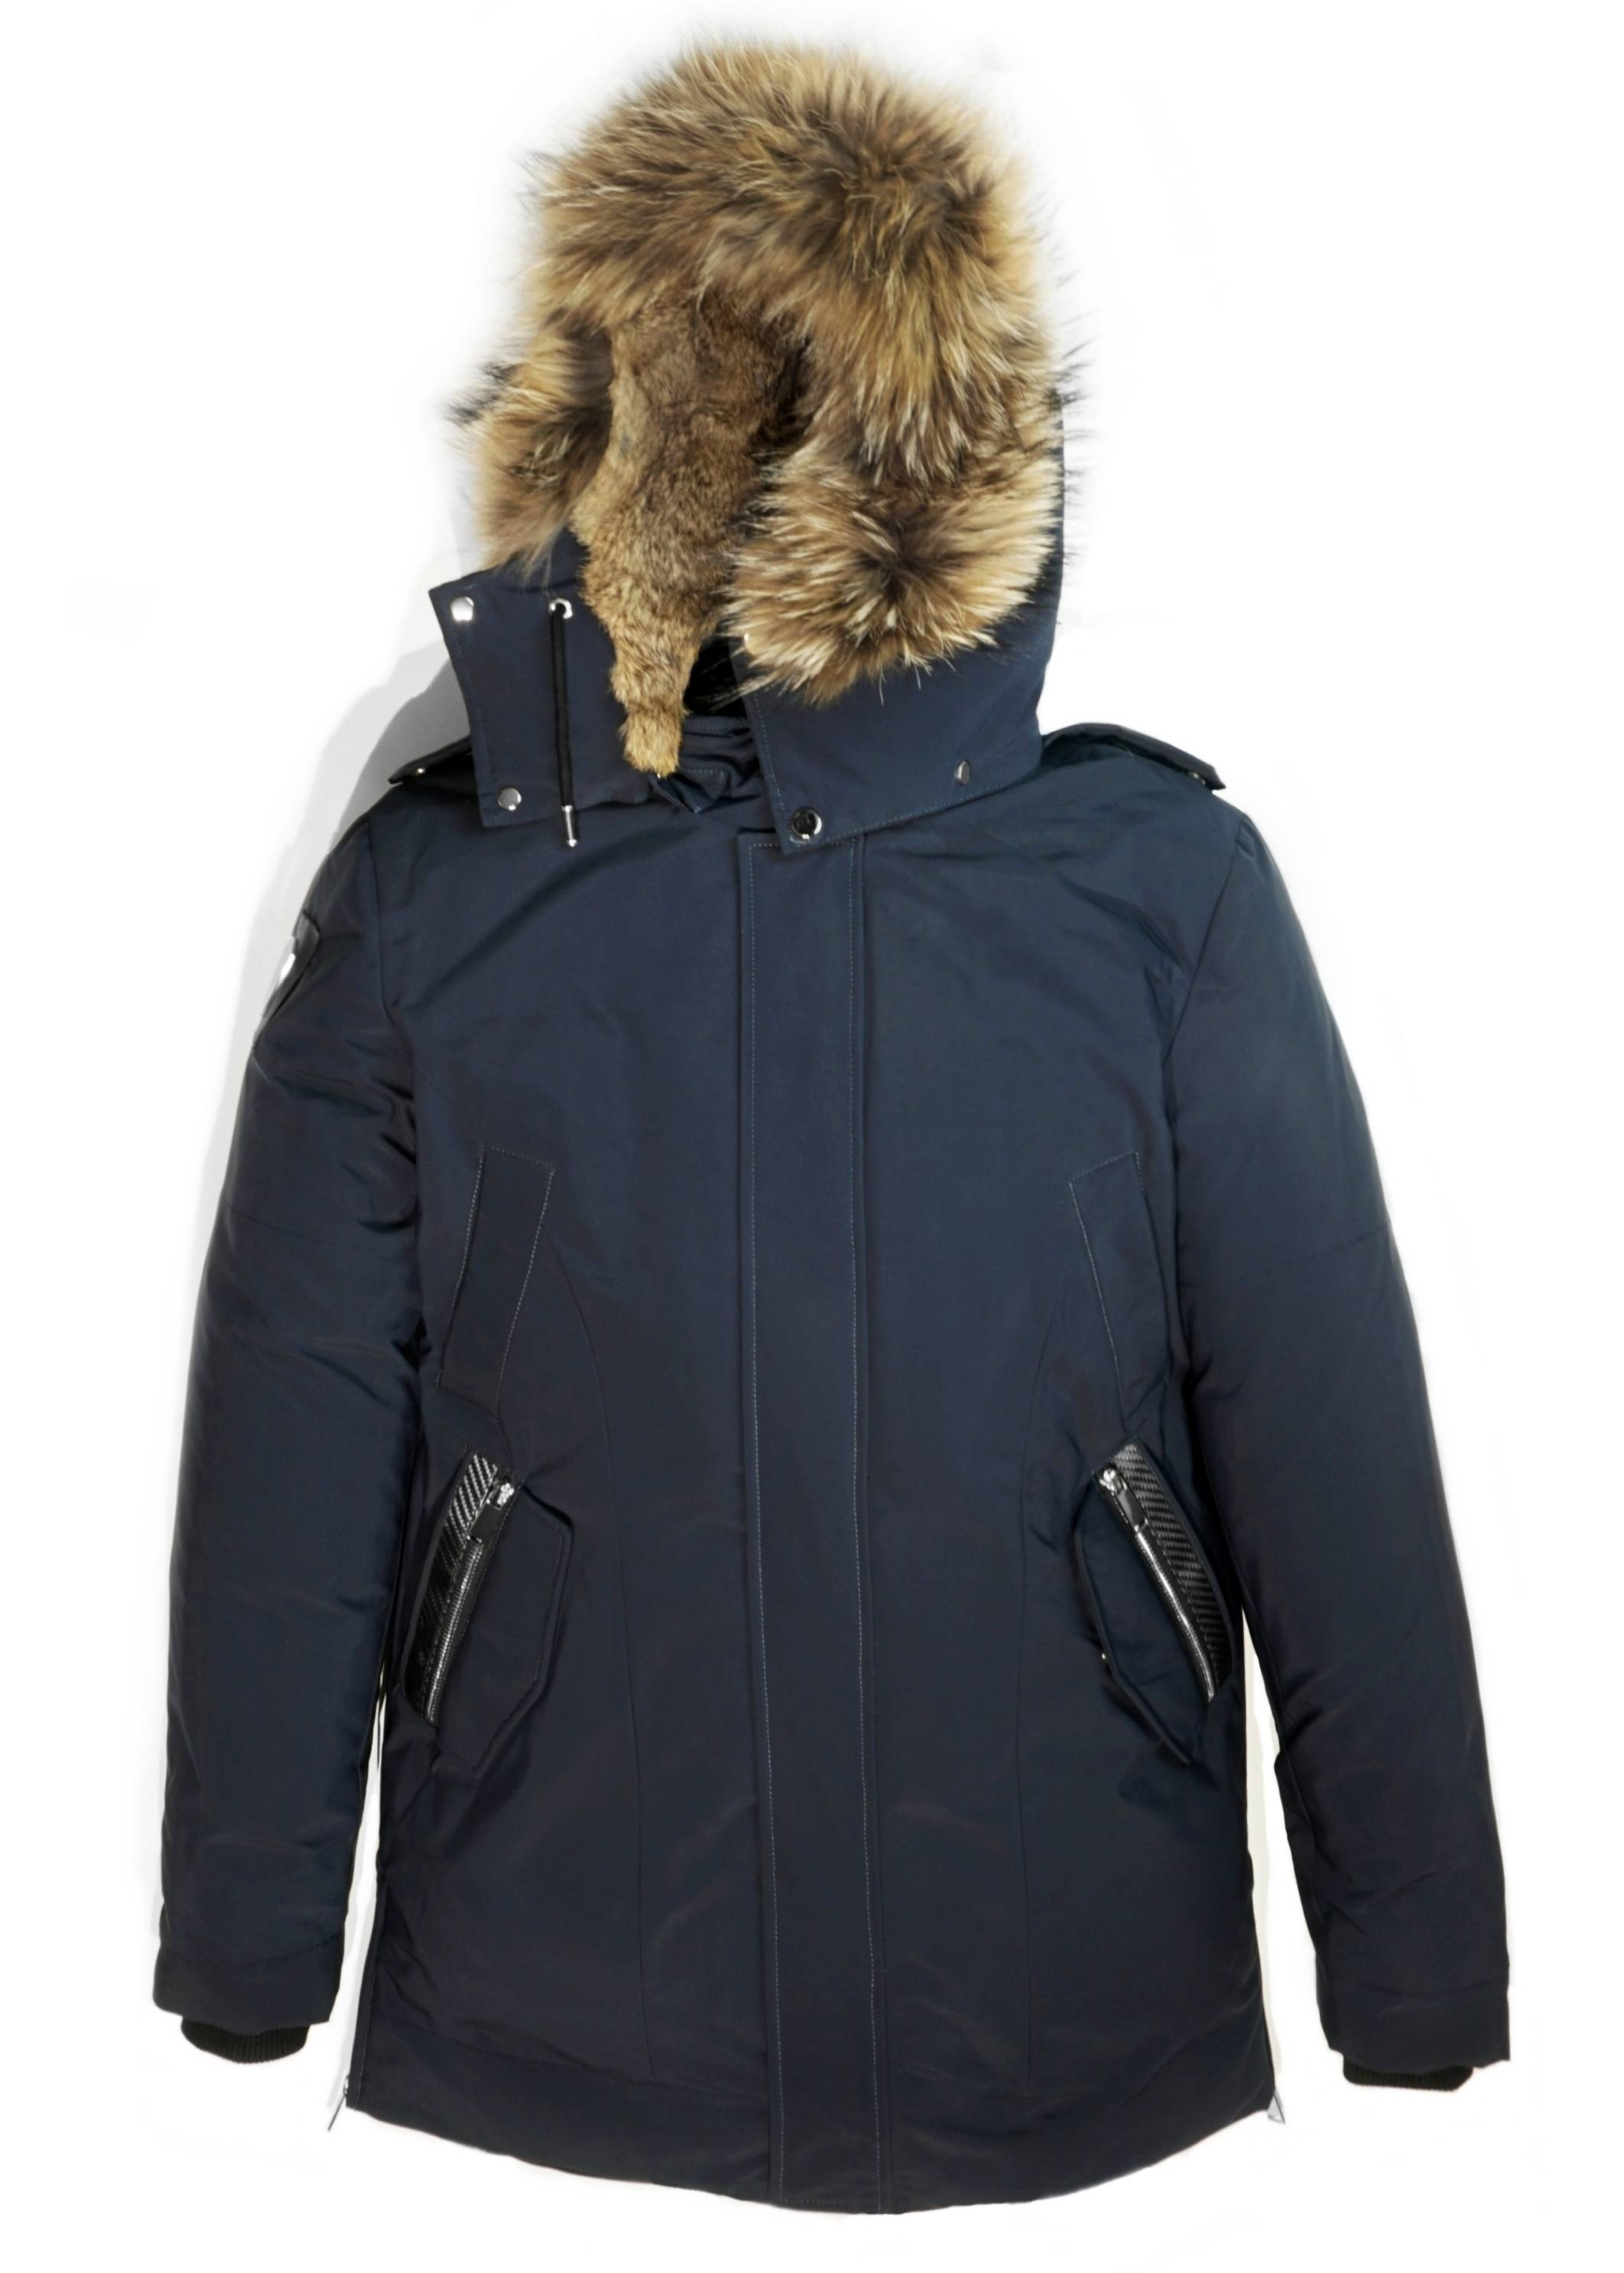 Carbonesque mens scandinavia goose down parka